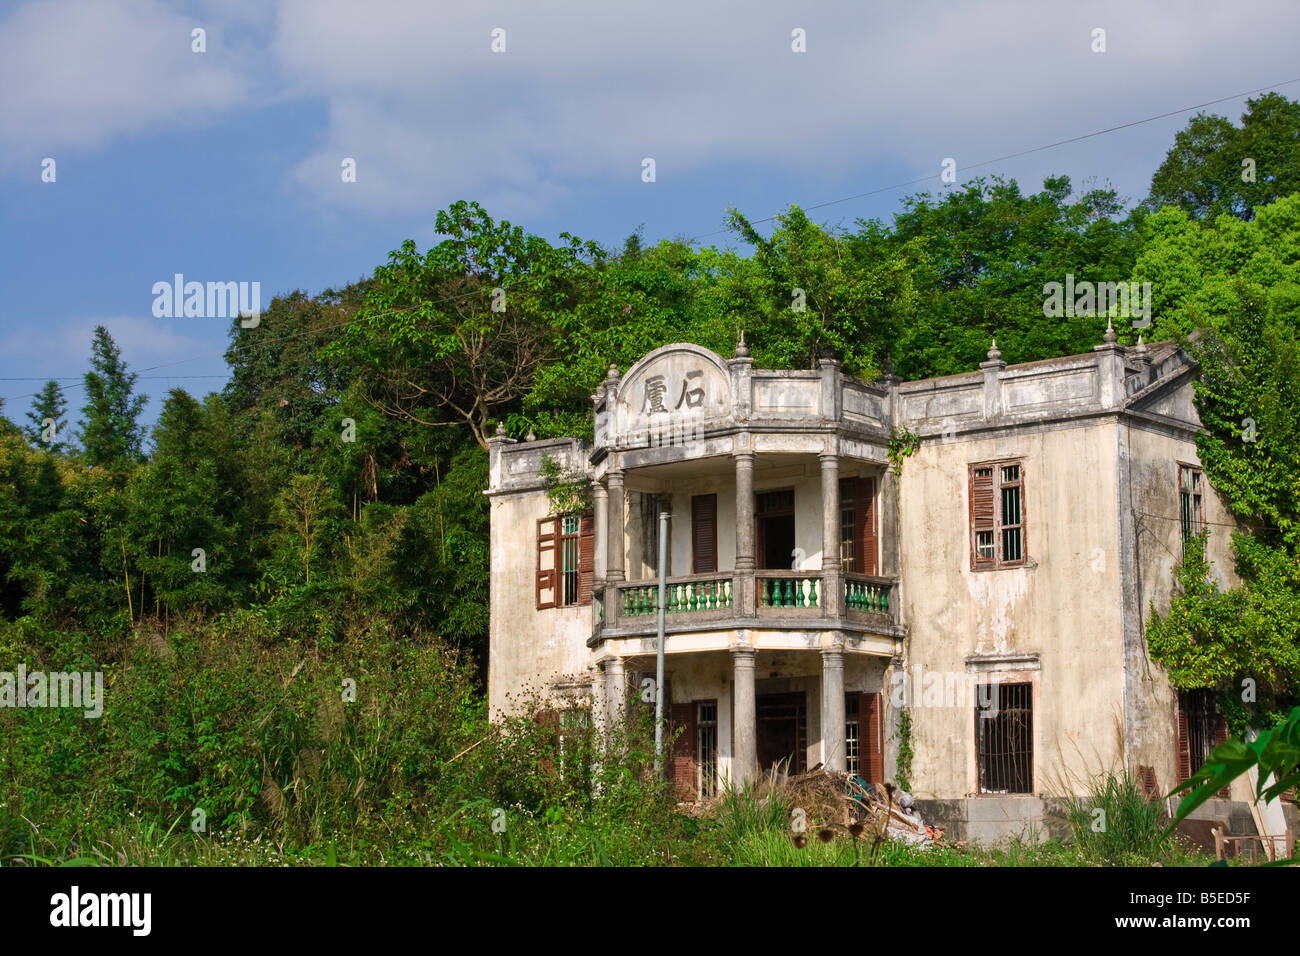 abandoned old mansion house in hong kong stock photo 20601323 alamy rh alamy com old mansion house dundee old mansion house dundee